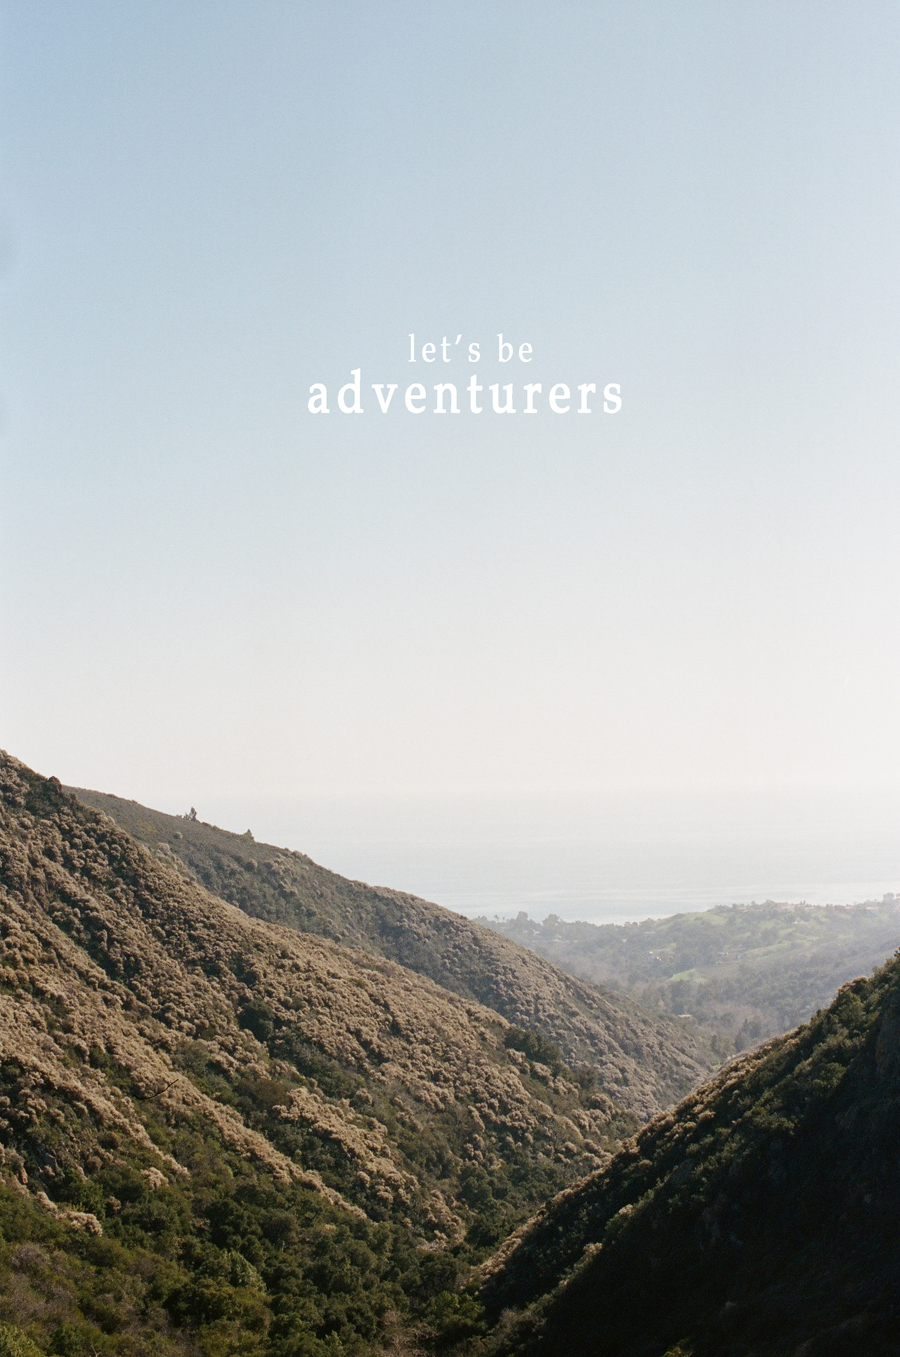 Hart & Honey Free Download | Let's Be Adventurers